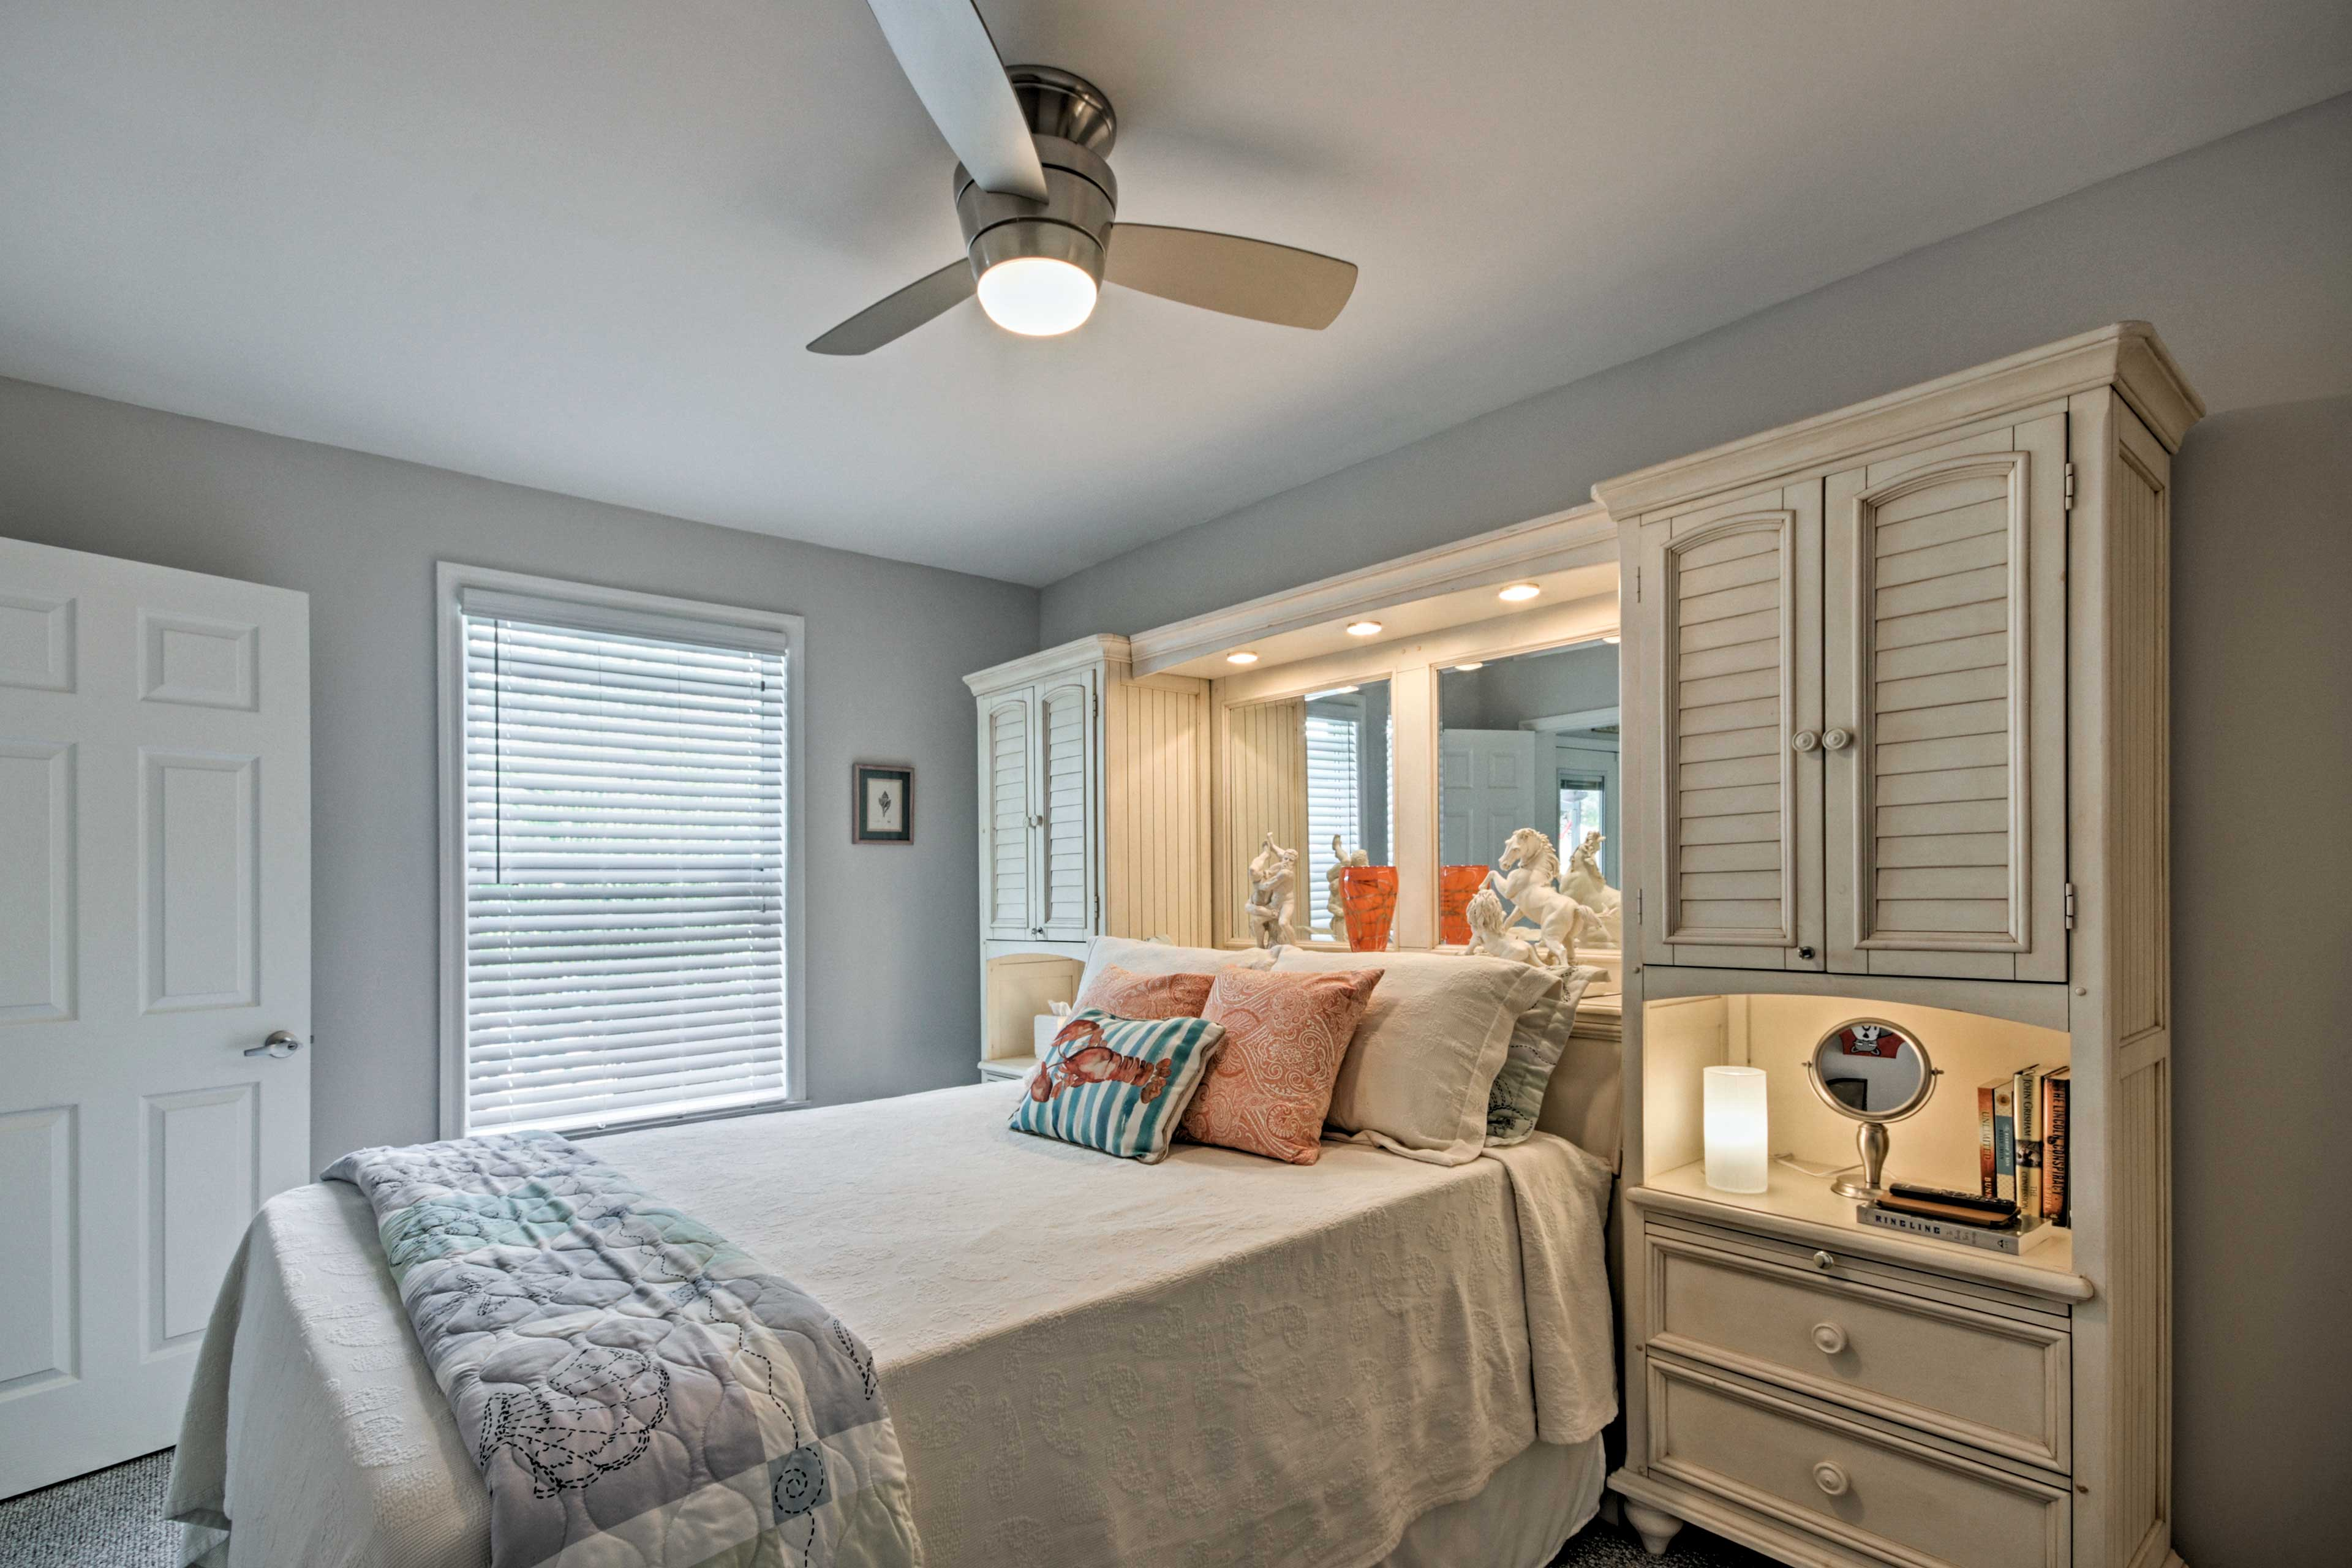 Retreat to one of the 3 bedrooms, sleeping up to 6 guests.